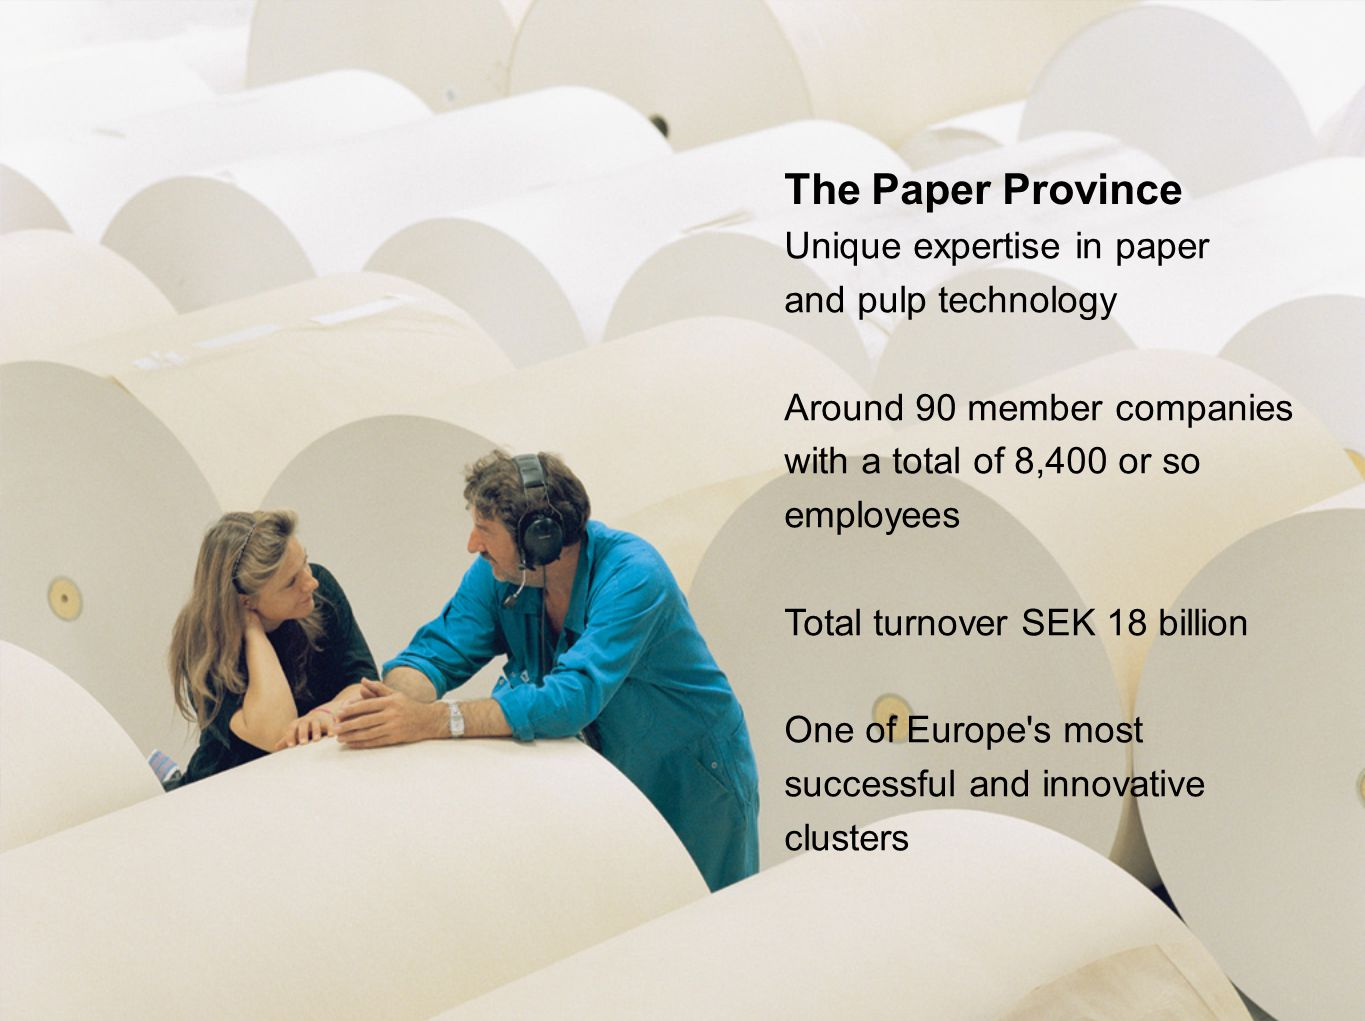 The Paper Province Unique expertise in paper and pulp technology